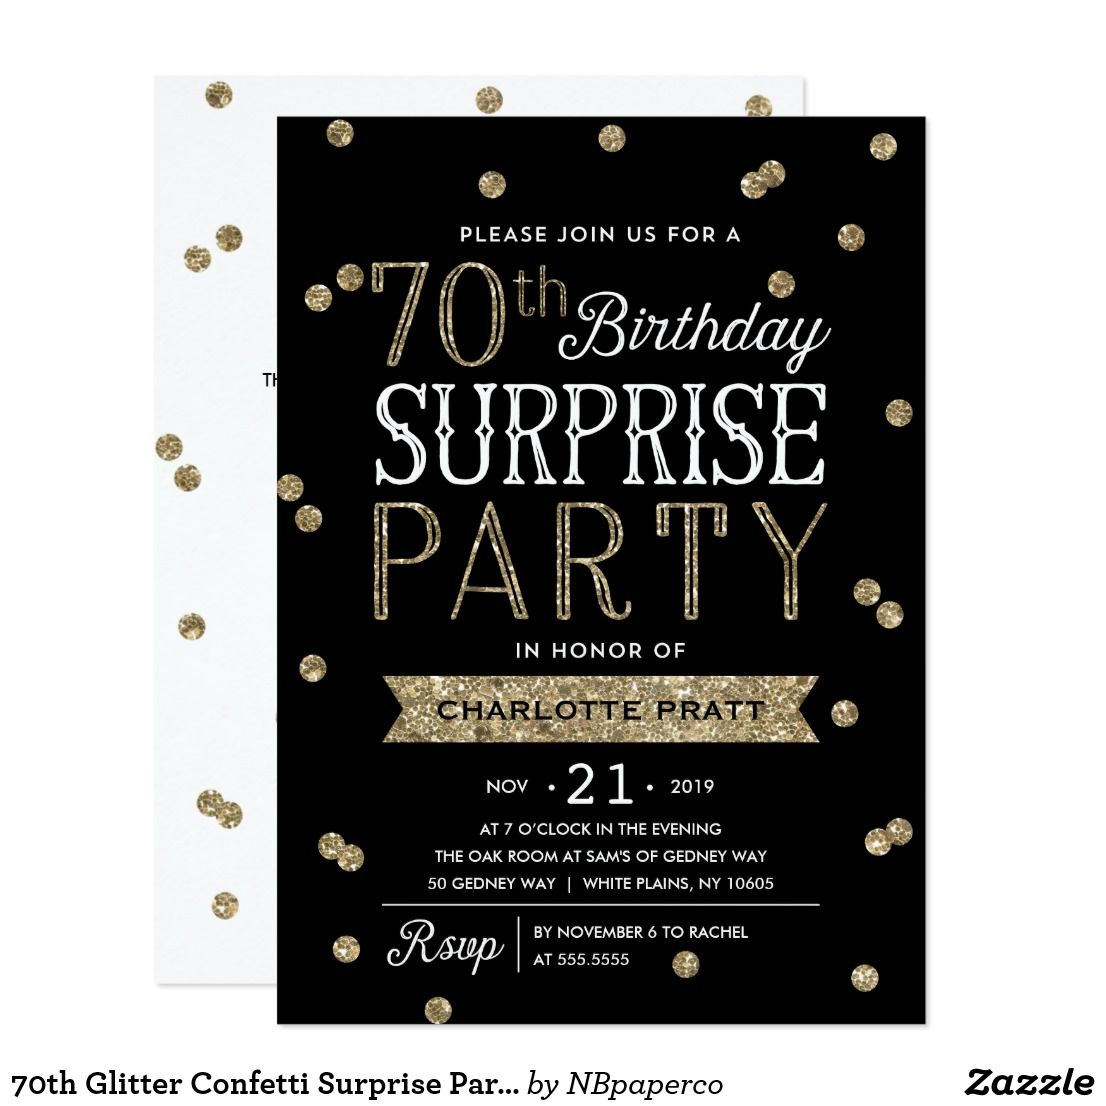 70th Glitter Confetti Surprise Party Invitation | Surprise party ...